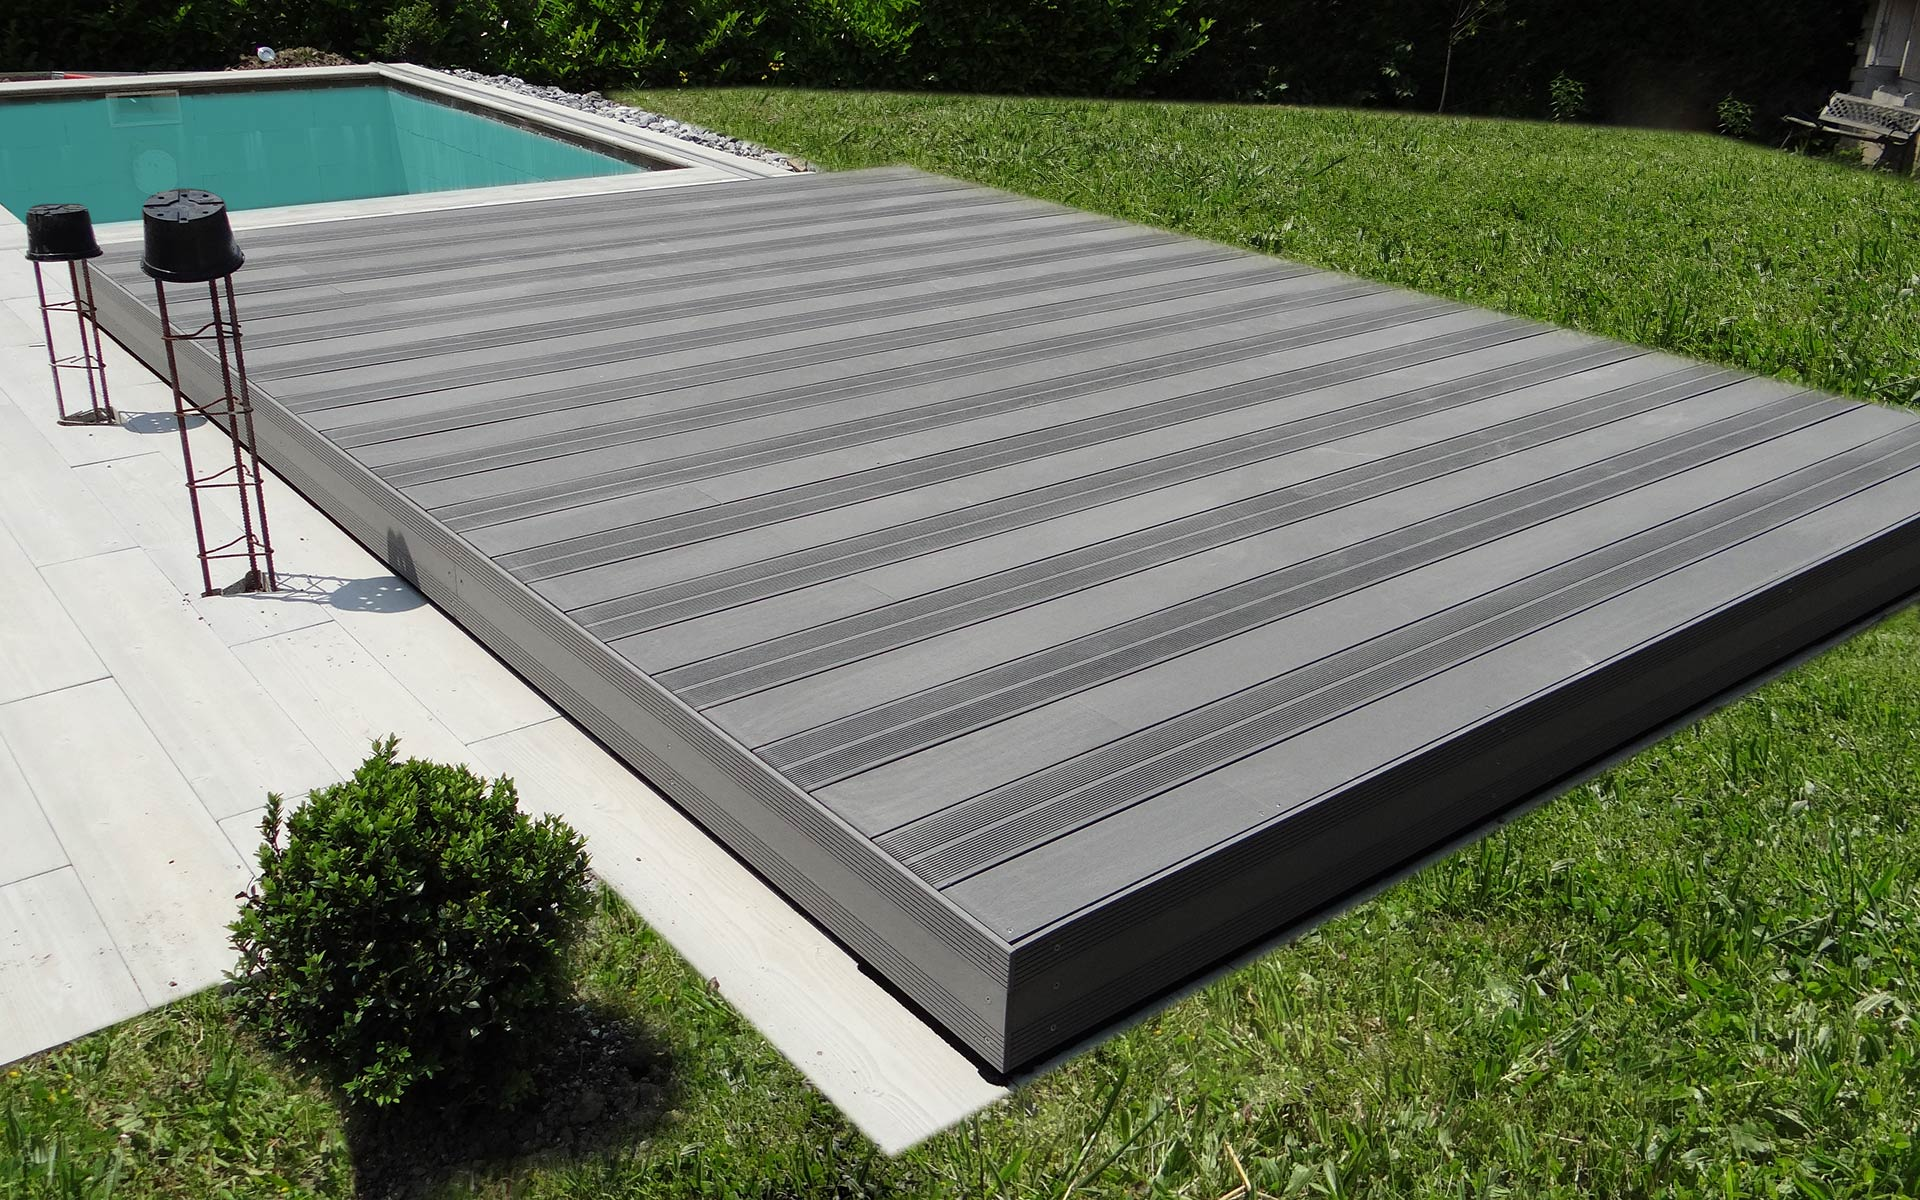 Terrasse mobile pour piscine hidden pool fond mobile pour piscine hidden pool for Couverture pour terrasse